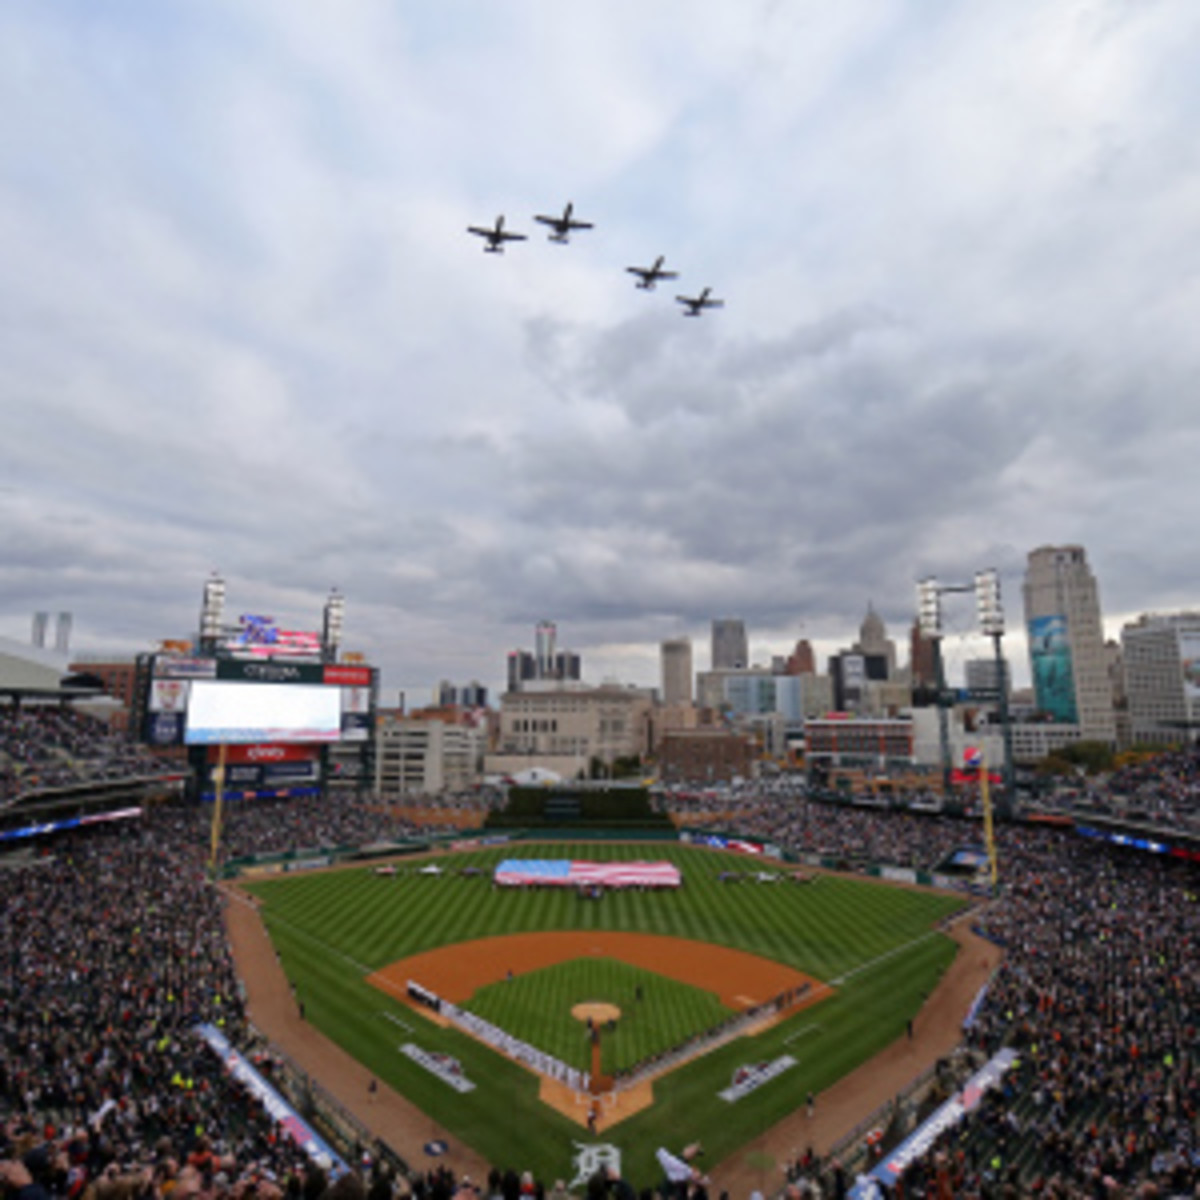 Military flyovers at sporting events, like these aircrafts appearing during the National Anthem at a Tigers-Athletics 2012 playoff game, could be a ritual of the past because of looming budget cuts by the federal government. (Leon Halip/Getty Images)